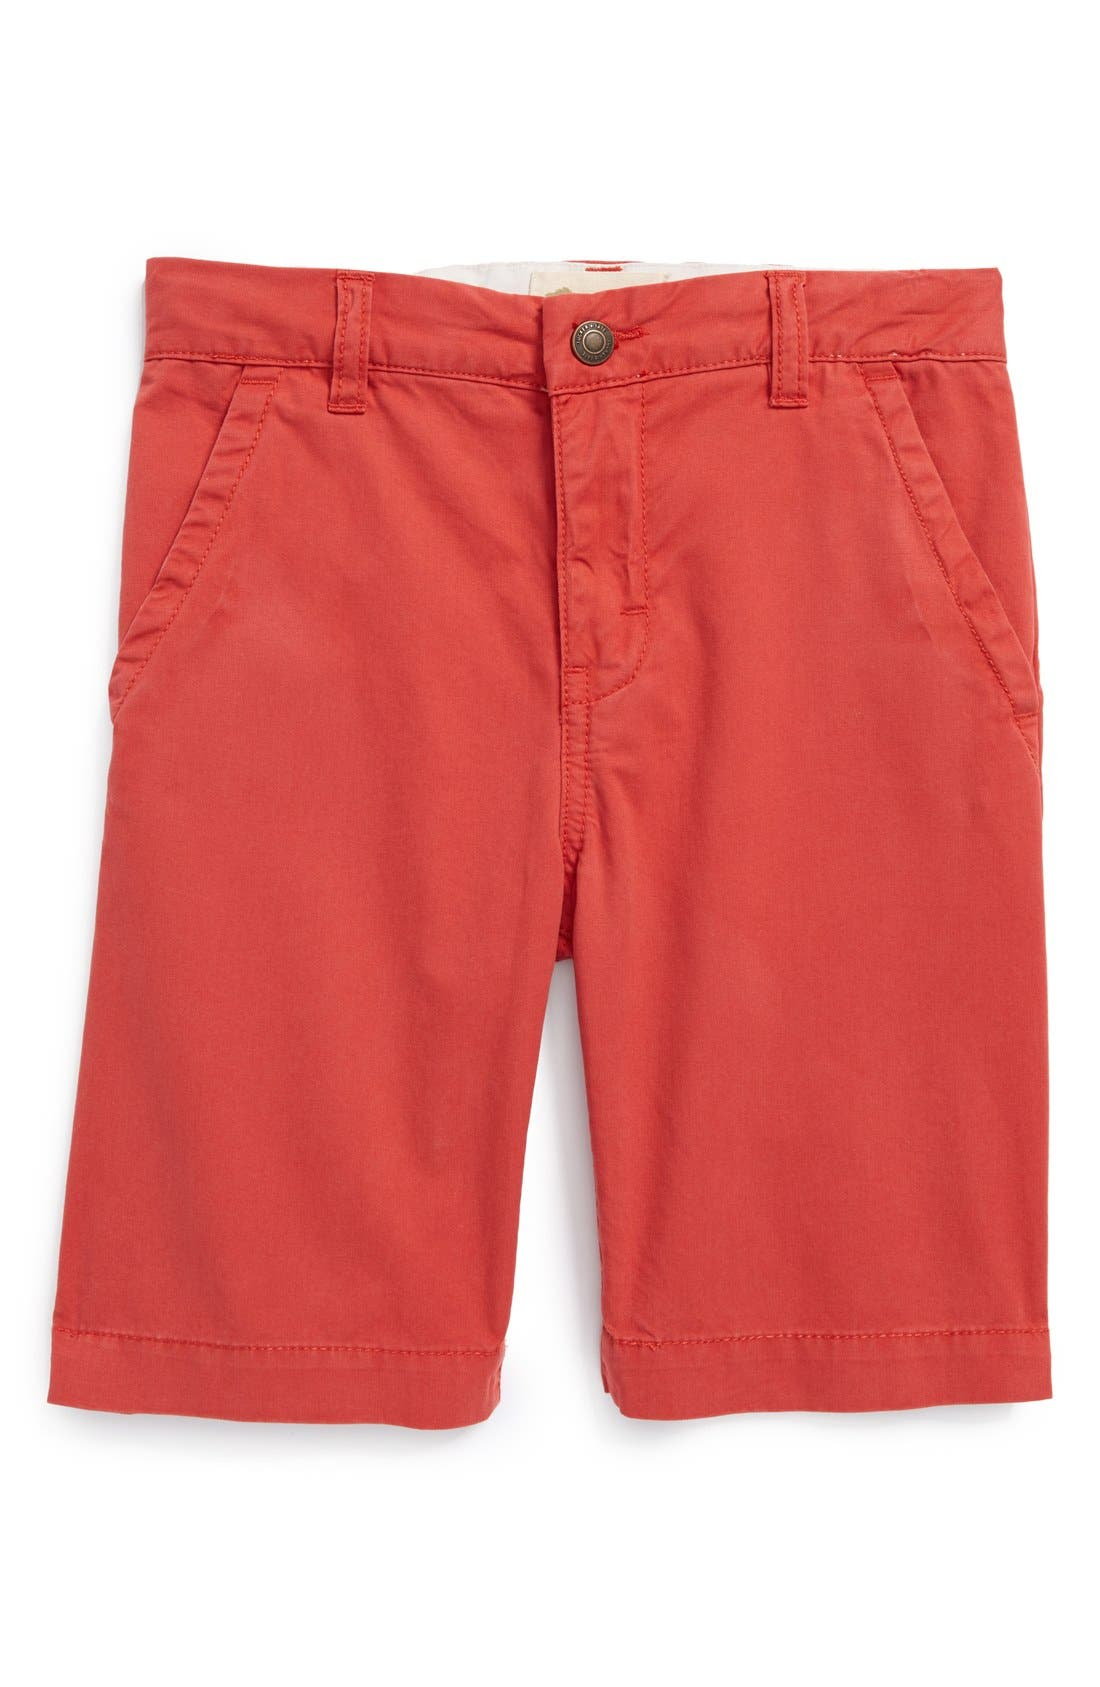 Alternate Image 1 Selected - Tucker + Tate 'Stunt' Chino Shorts (Toddler Boys, Little Boys & Big Boys)